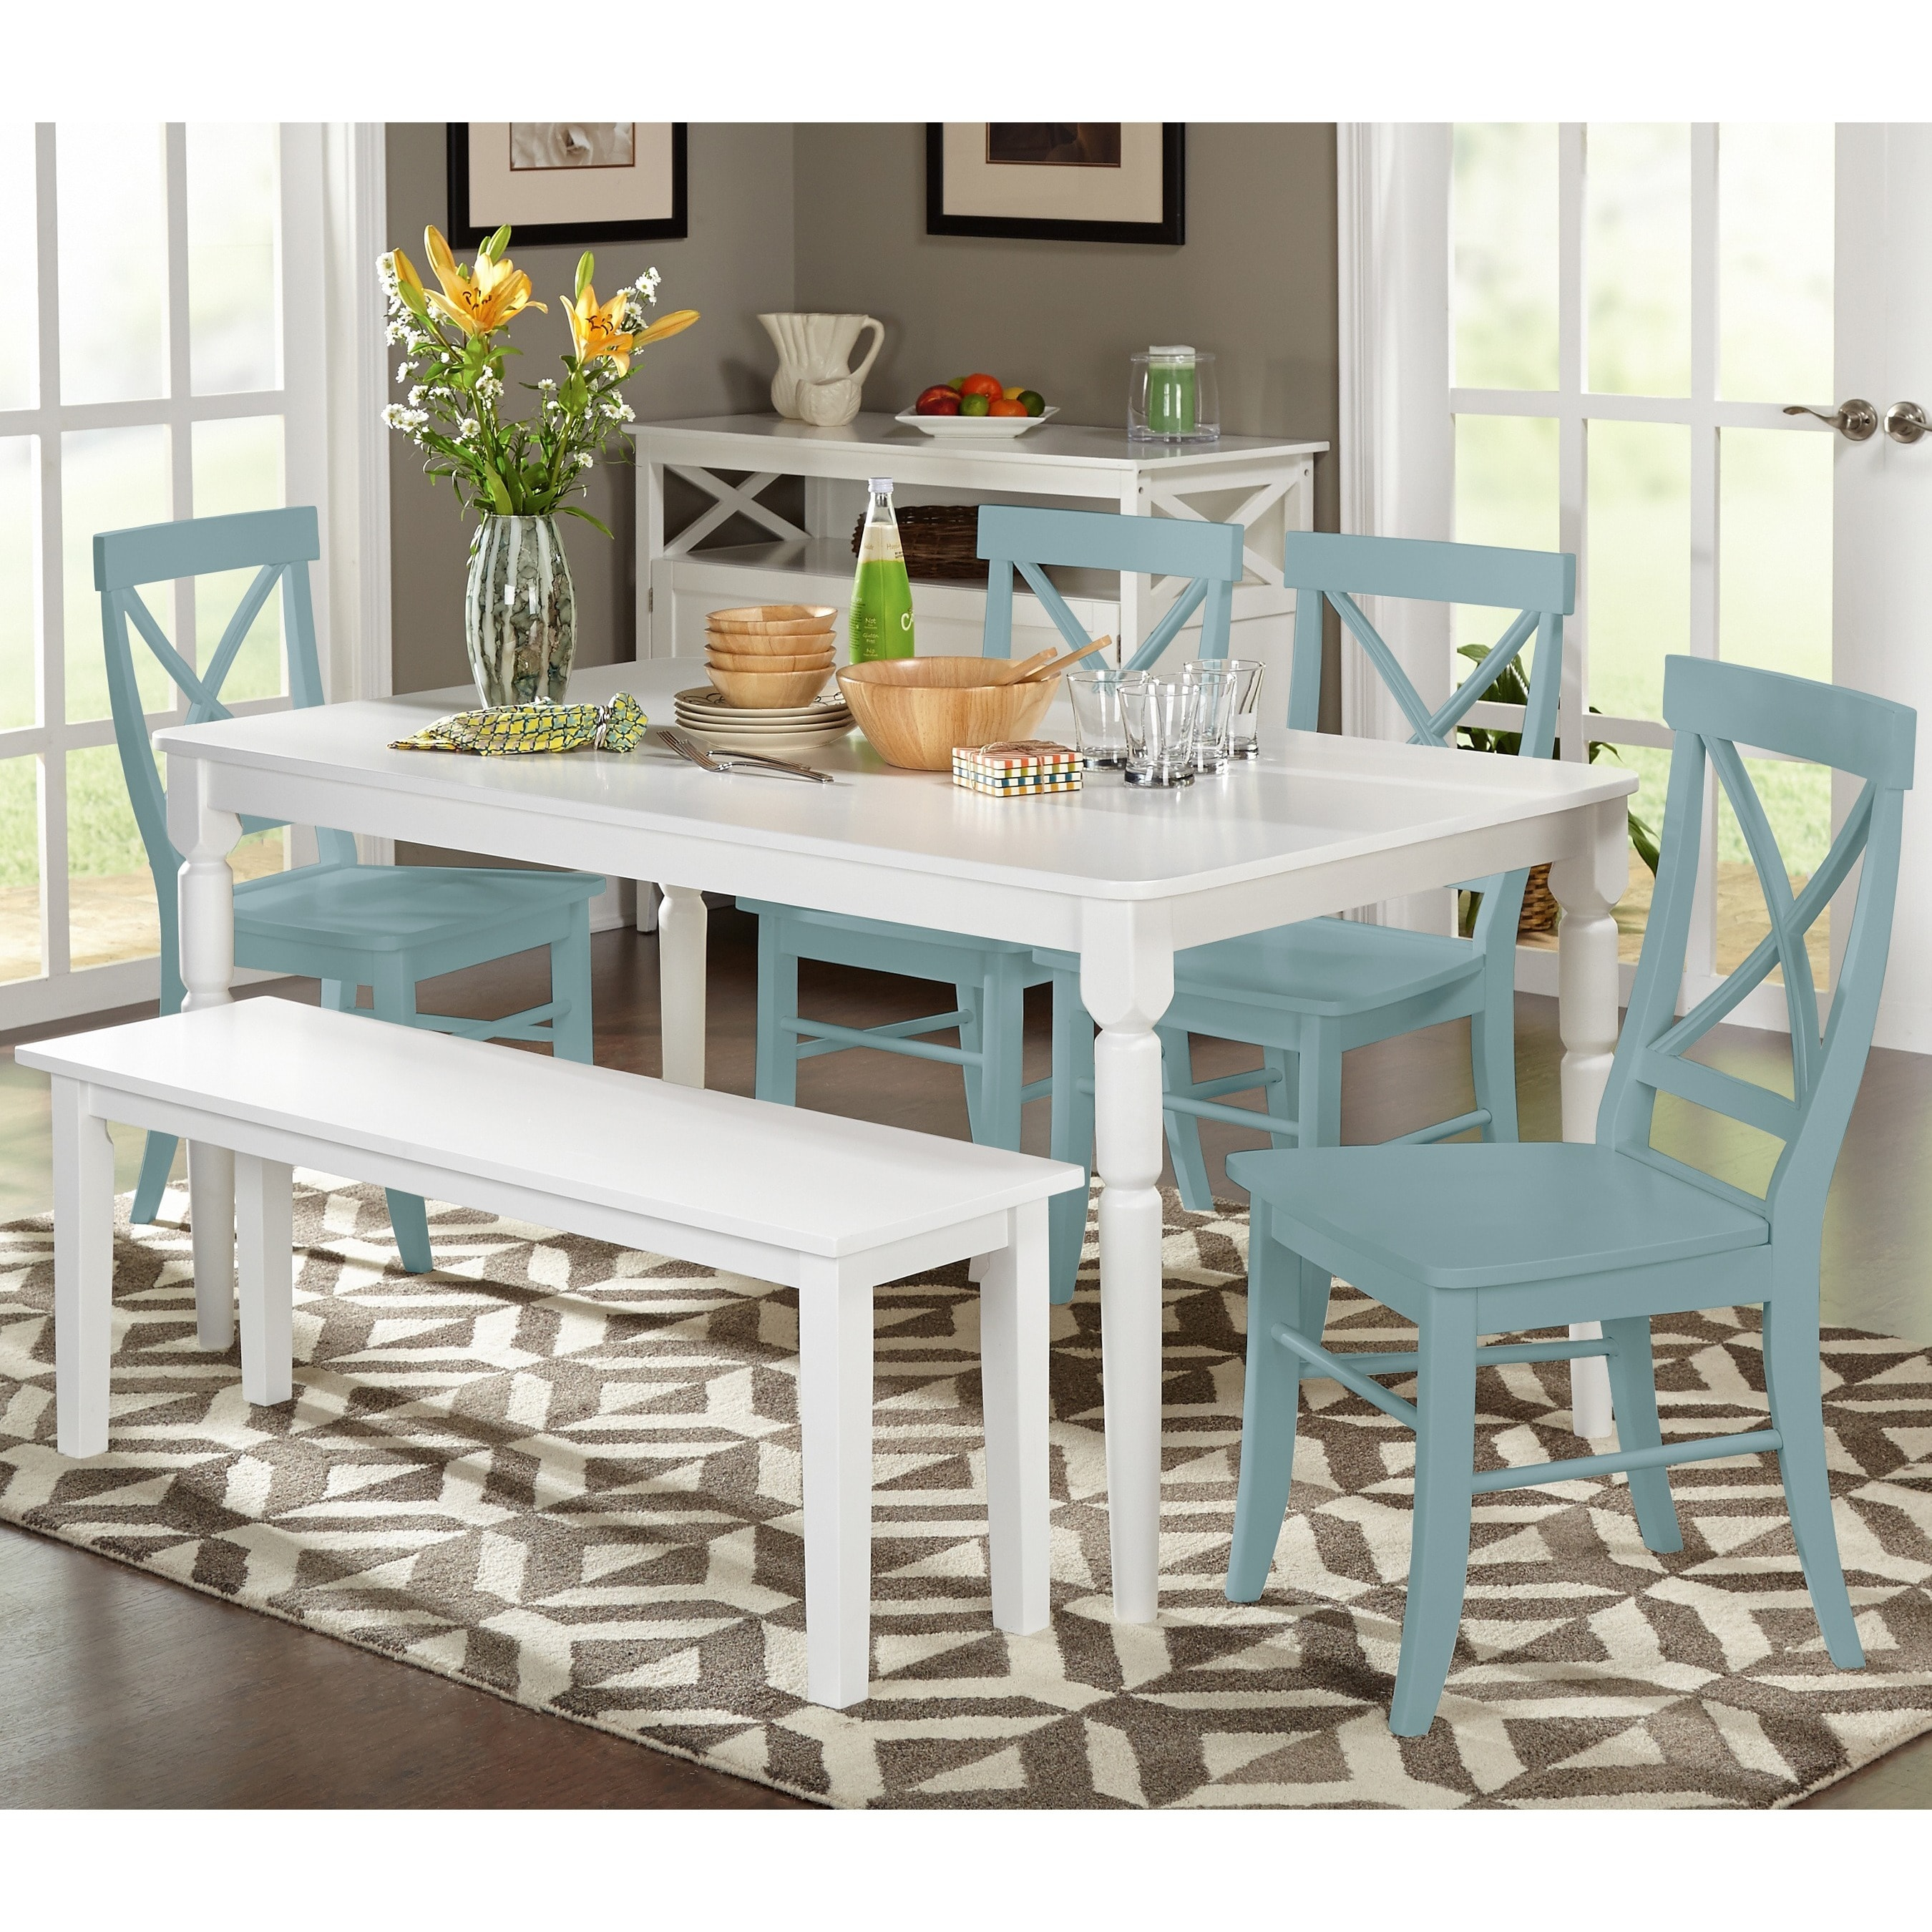 Shop Simple Living 6 piece Albury Dining Set